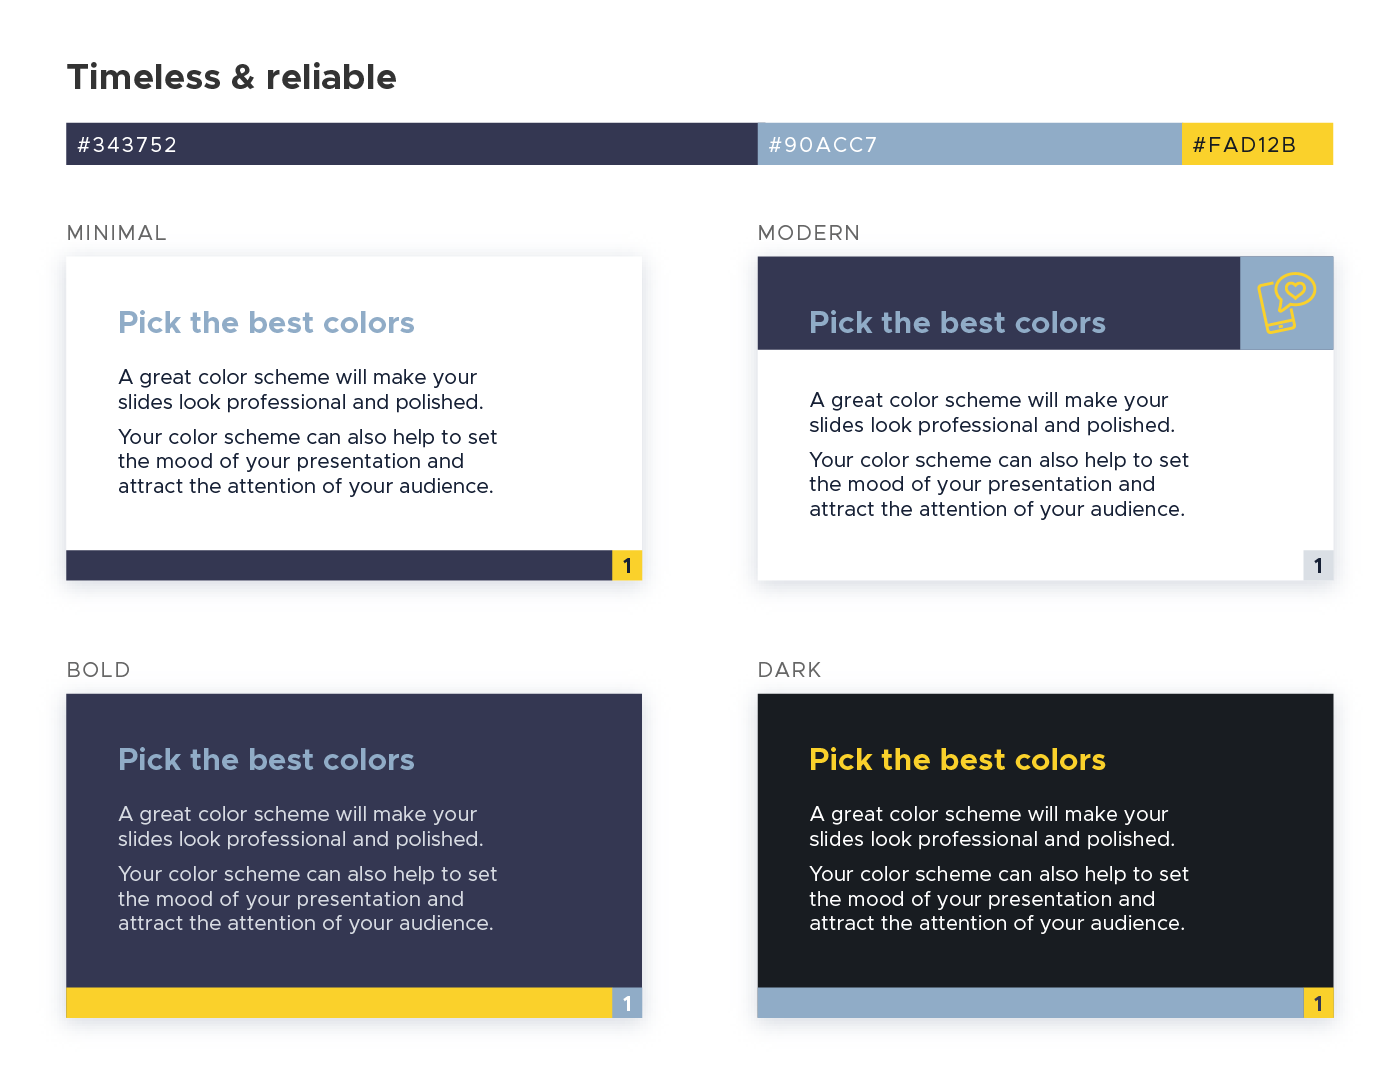 Color scheme for presentations - Timeless and reliable